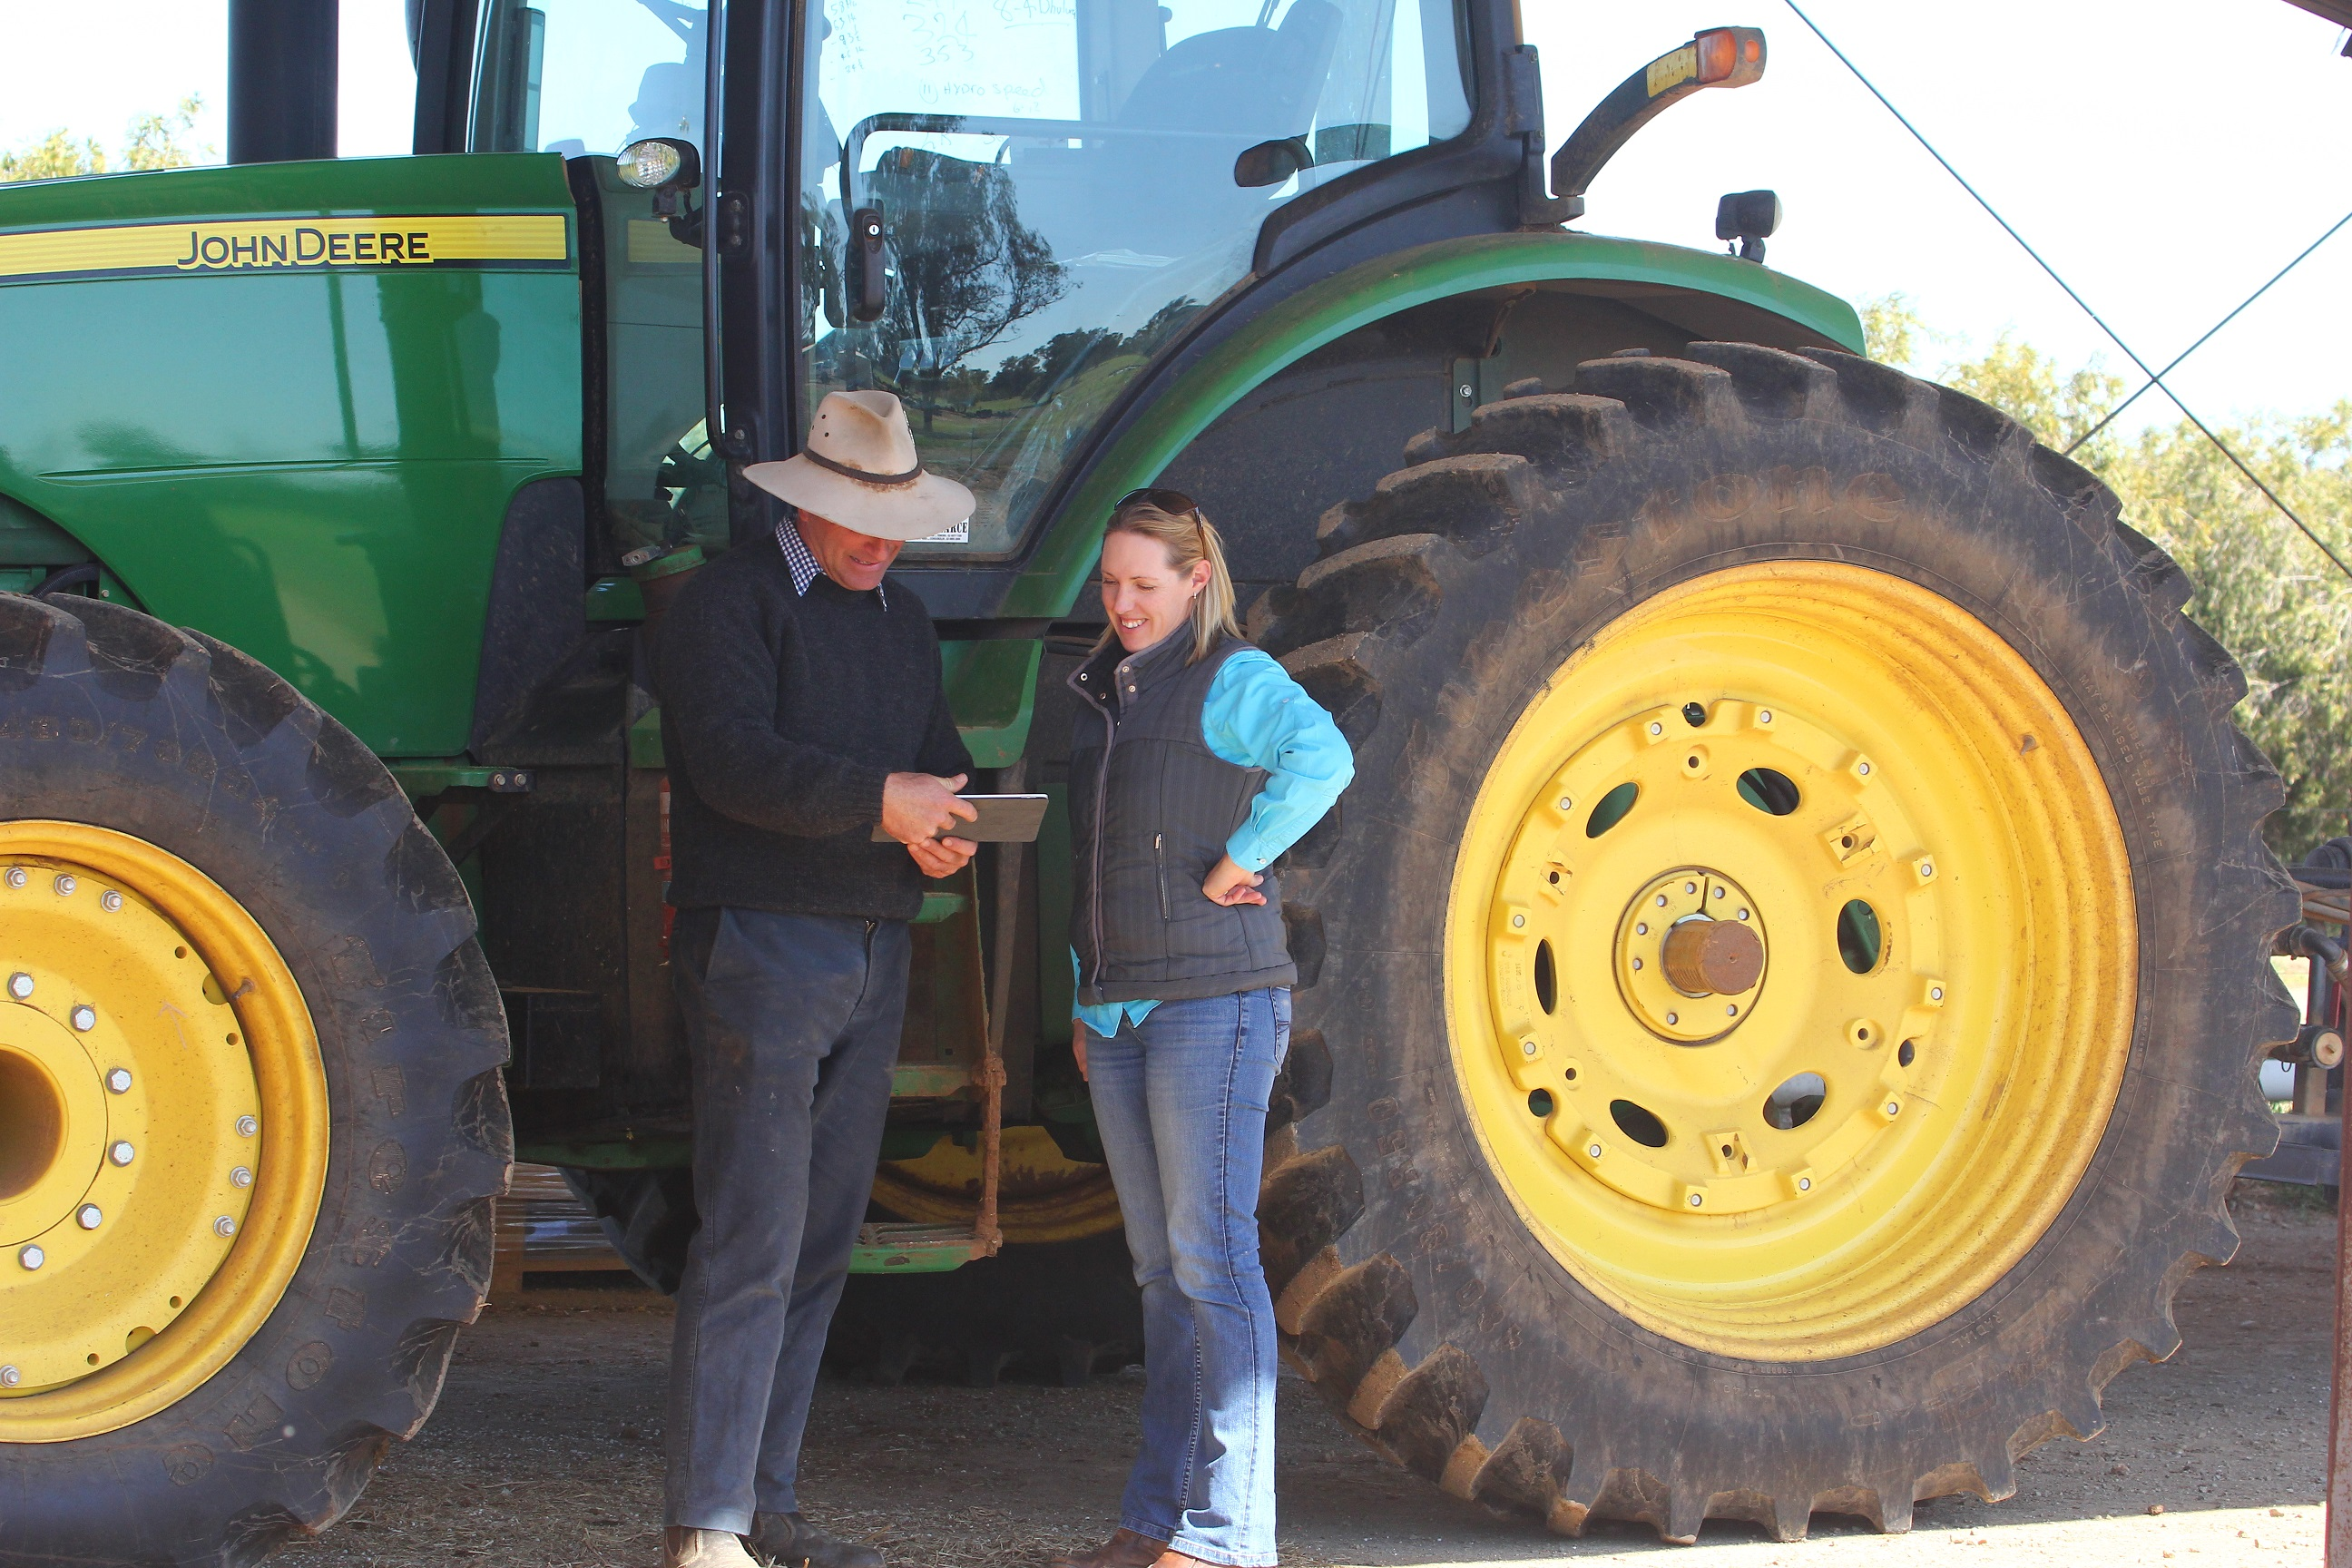 James Stephens, Charles Sturt's farm manager and Dr Alison Southwell looking at digital agriculture information on an iPad while standing in front of a large tractor.